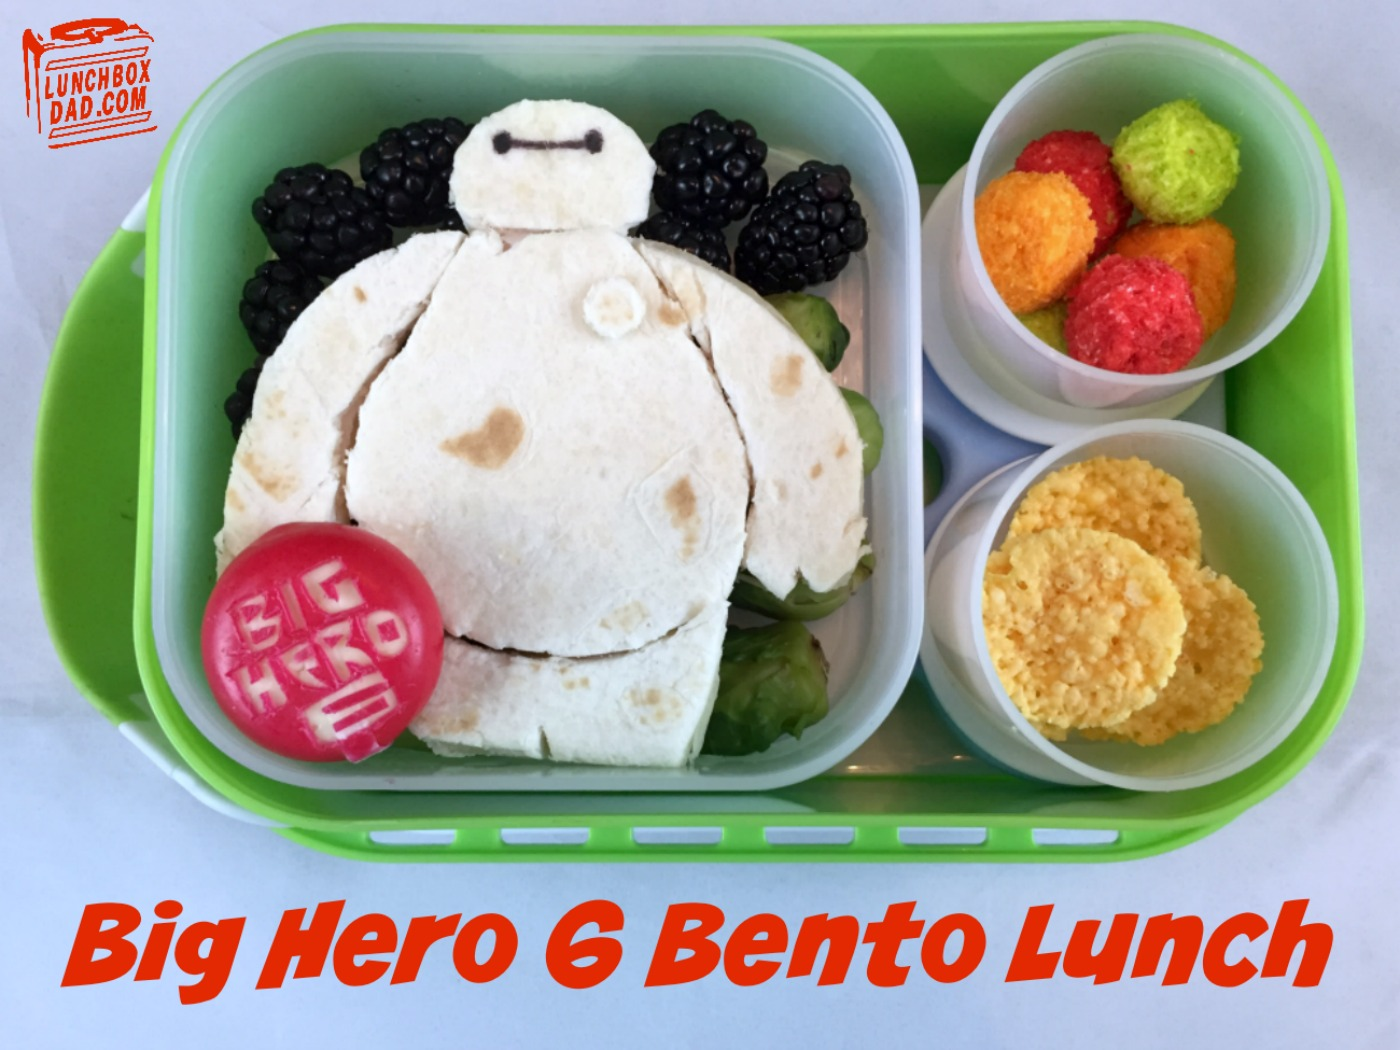 lunchbox dad big hero 6 bento lunch and tutorial. Black Bedroom Furniture Sets. Home Design Ideas